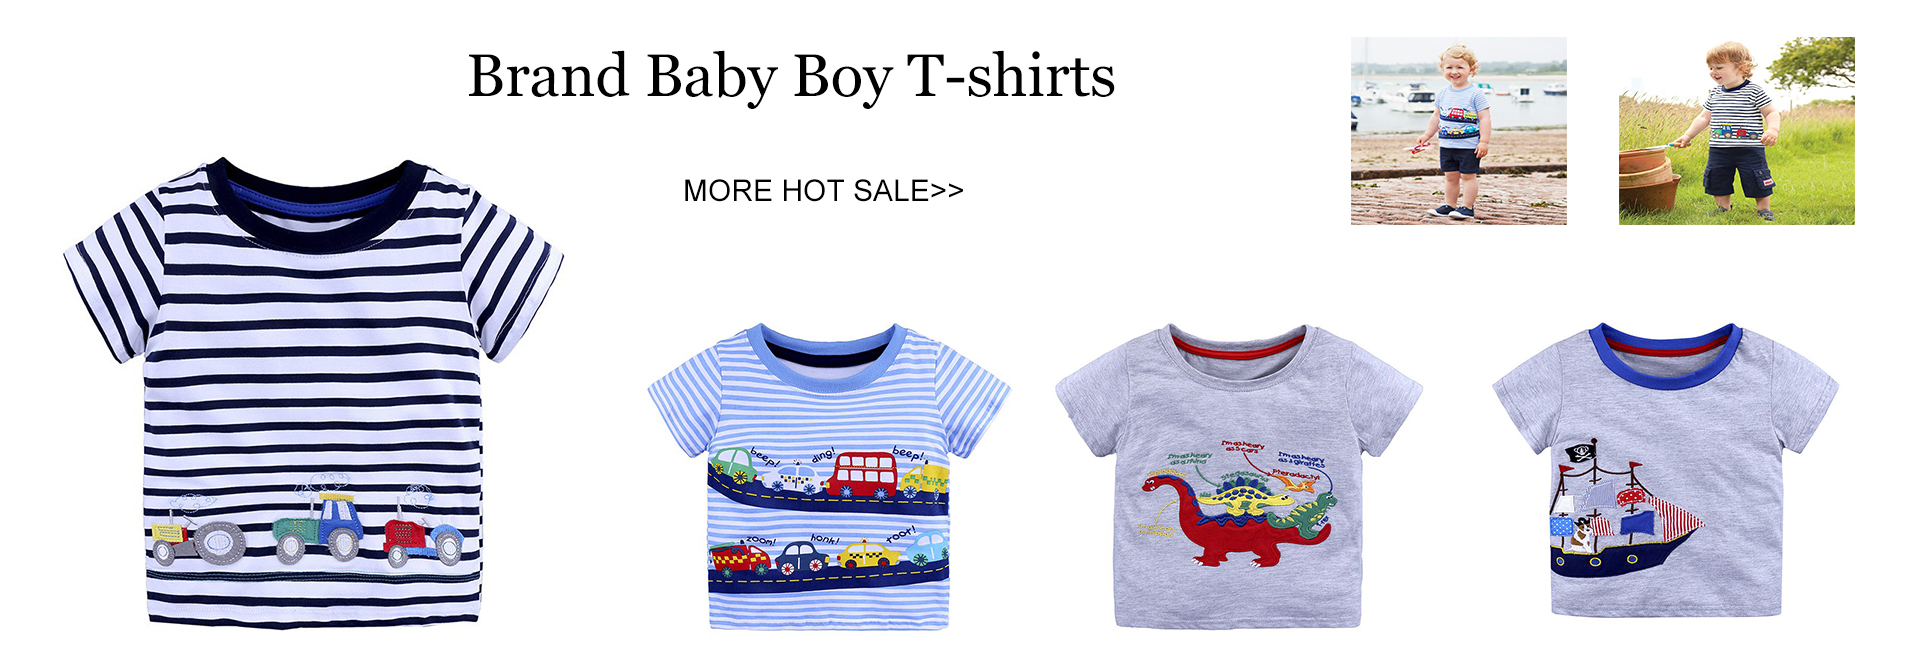 Judy Baby Clothes Store Small Orders Online Store Hot Selling And